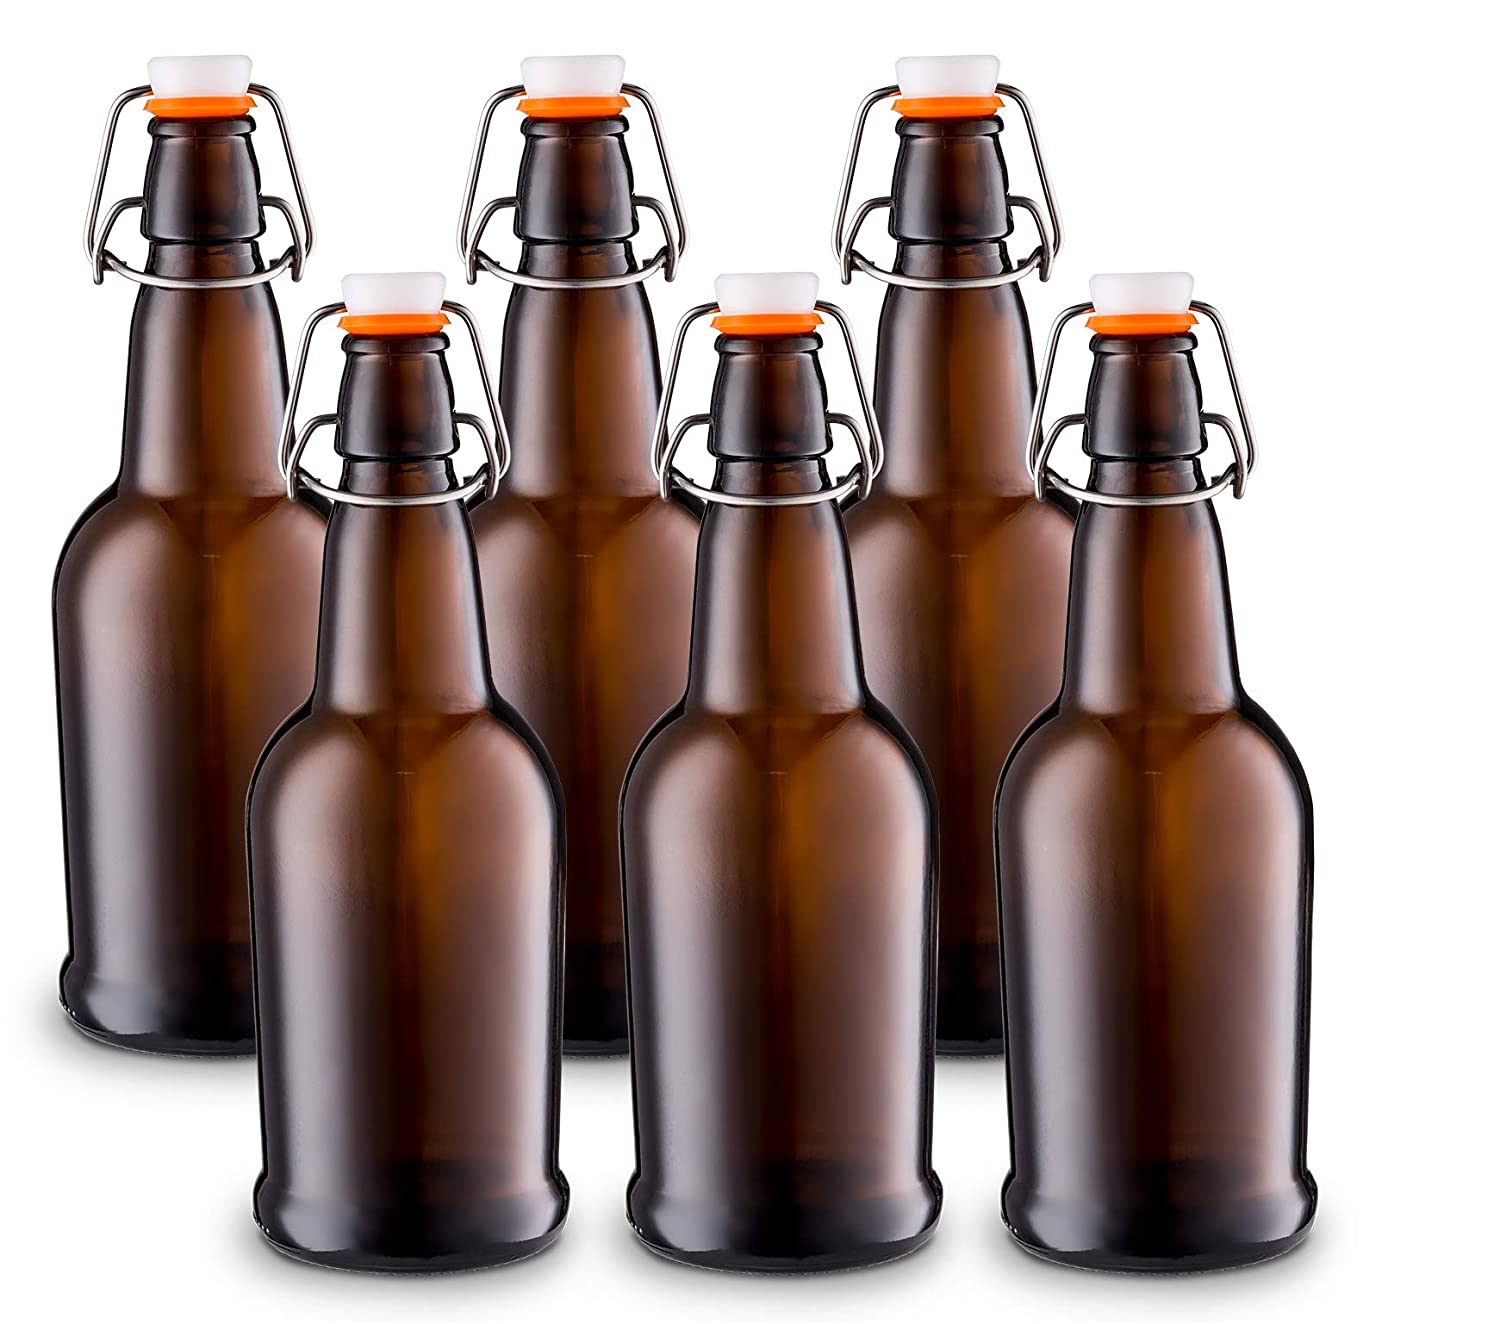 Home Brewing Glass Beer Bottle with Easy Wire Swing Cap & Airtight Rubber Seal Amber - 16oz - Case of 6 - by Tiabo COMINHKPR136469